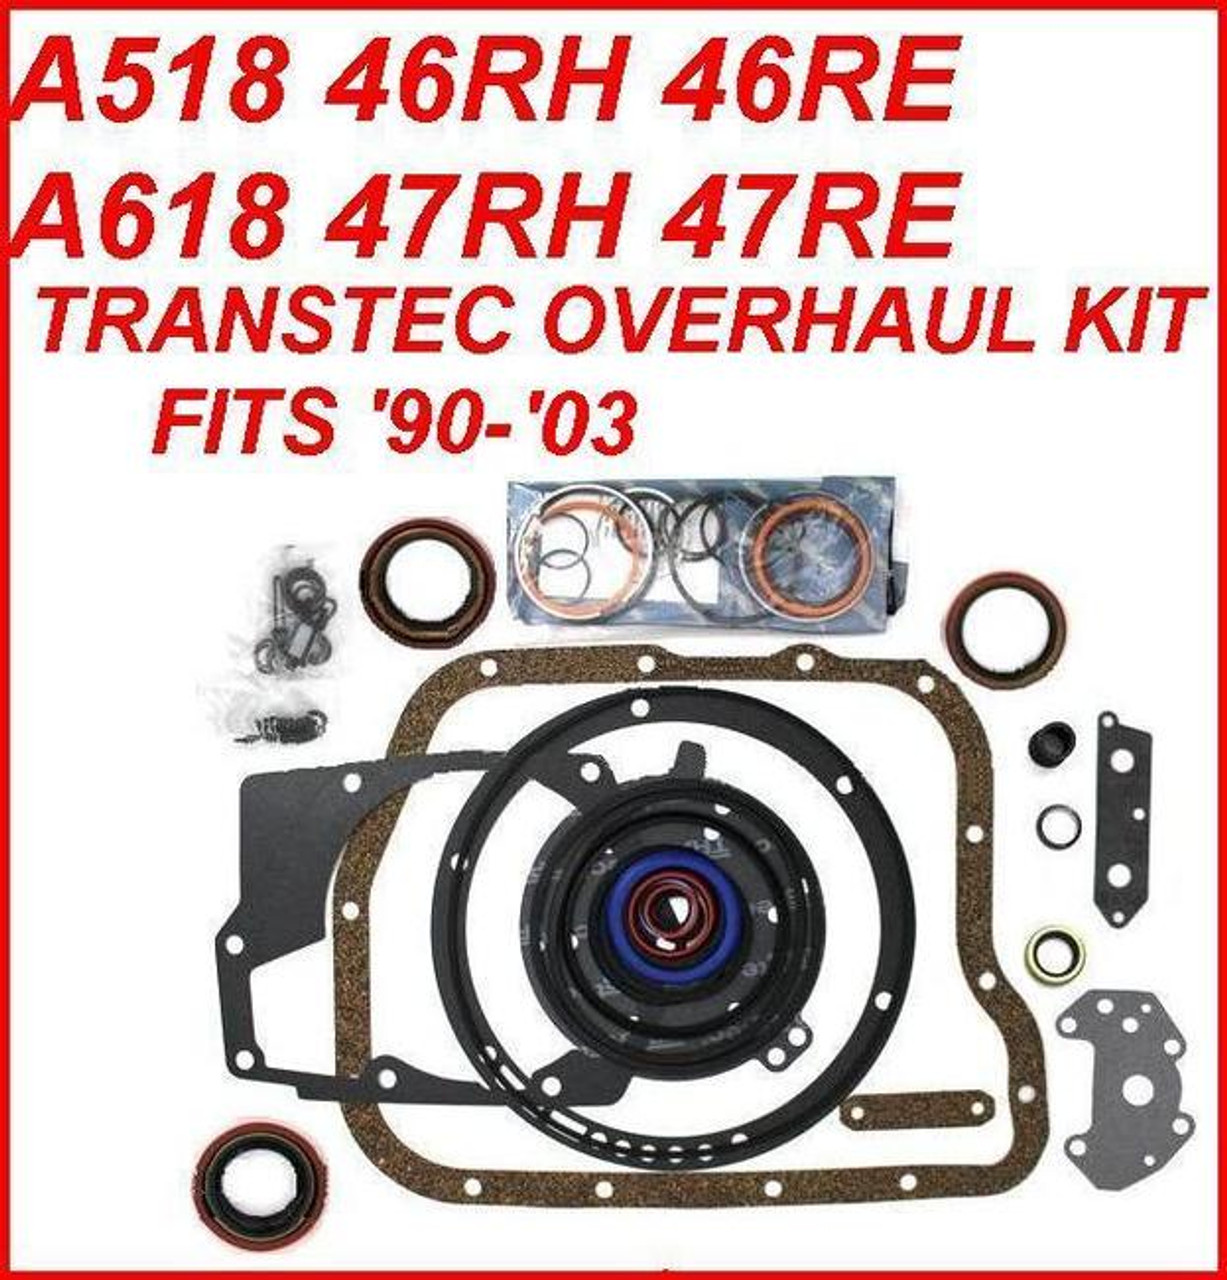 A518 46RH 46RE A618 47RH 47RE TRANSMISSION OVERHAUL KIT by TRANSTEC FITS  '90-'03 DODGE & JEEP